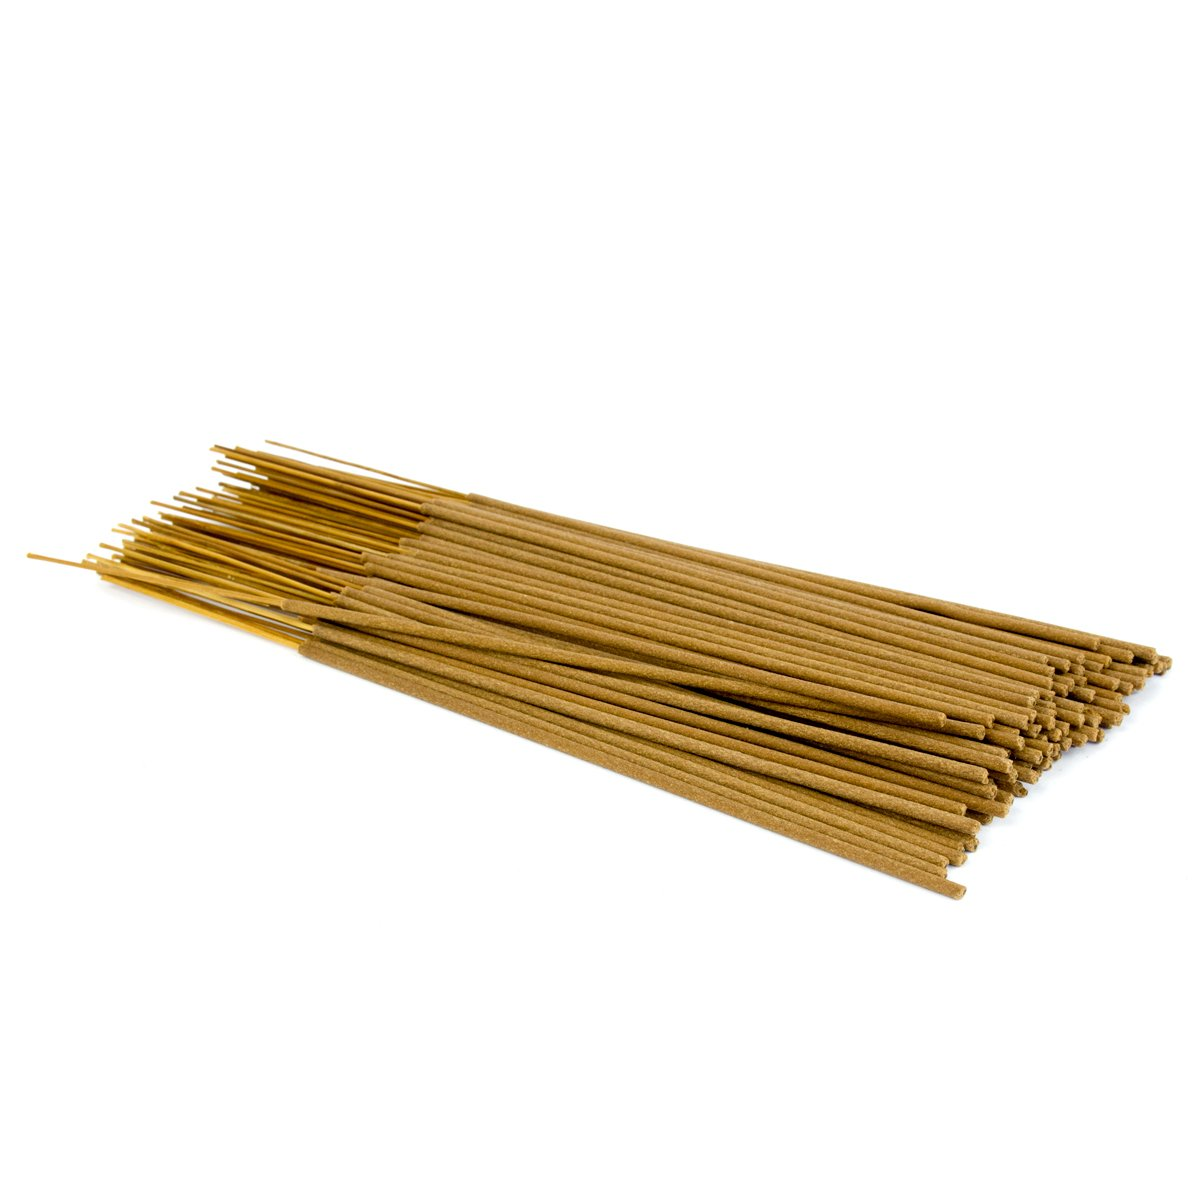 "Incense Sticks - 9"" - 400pc"